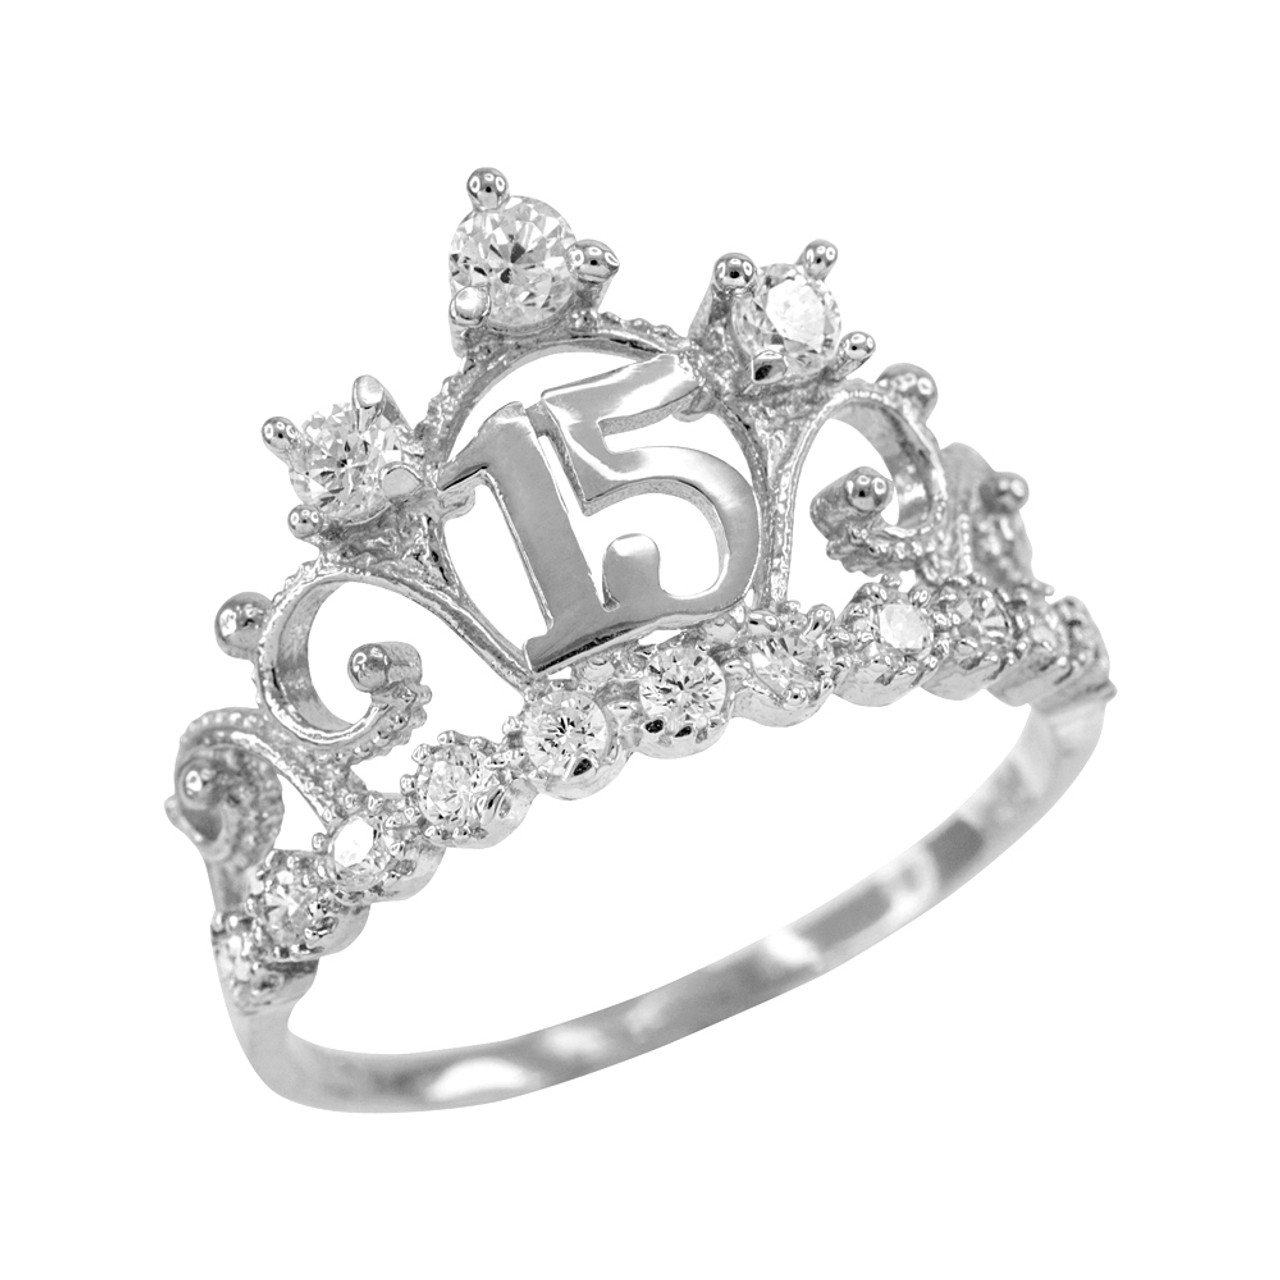 quinceanera rings ceremony bracelets traditions sweet celebration